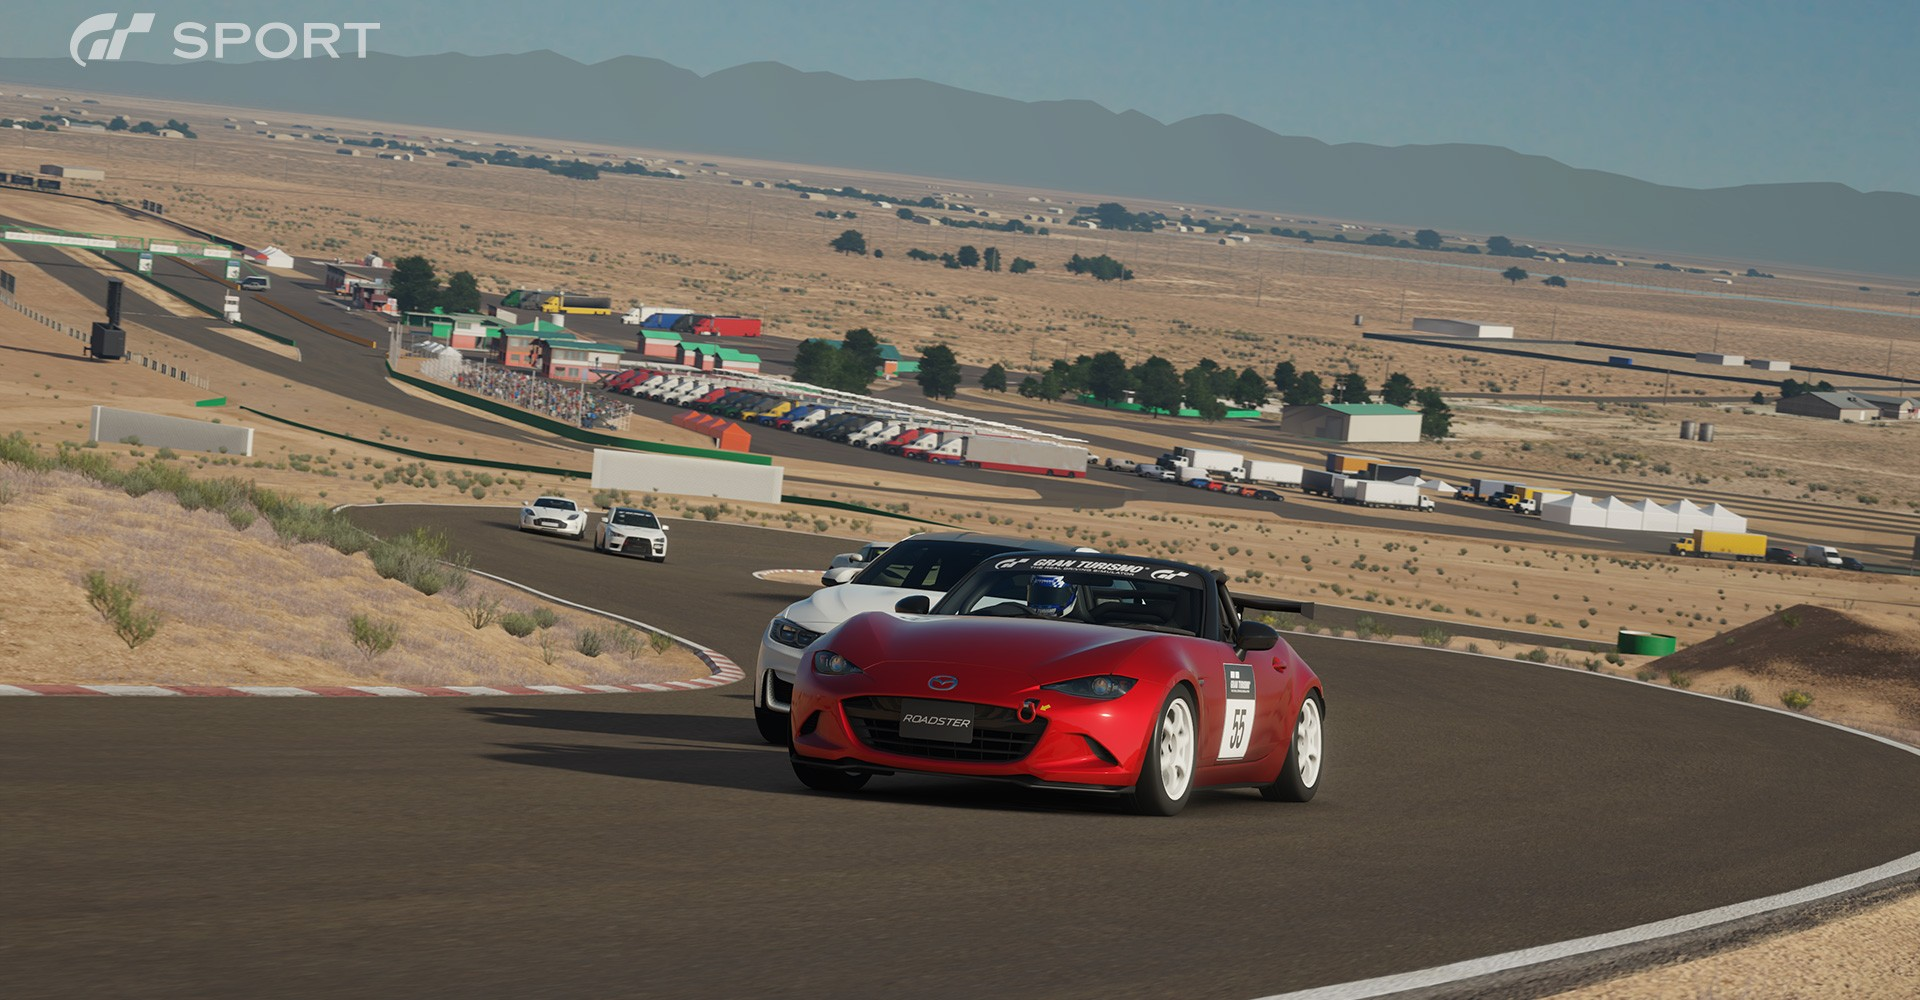 We Get Our Hands On Gran Turismo Sport At The Official Unveiling Event